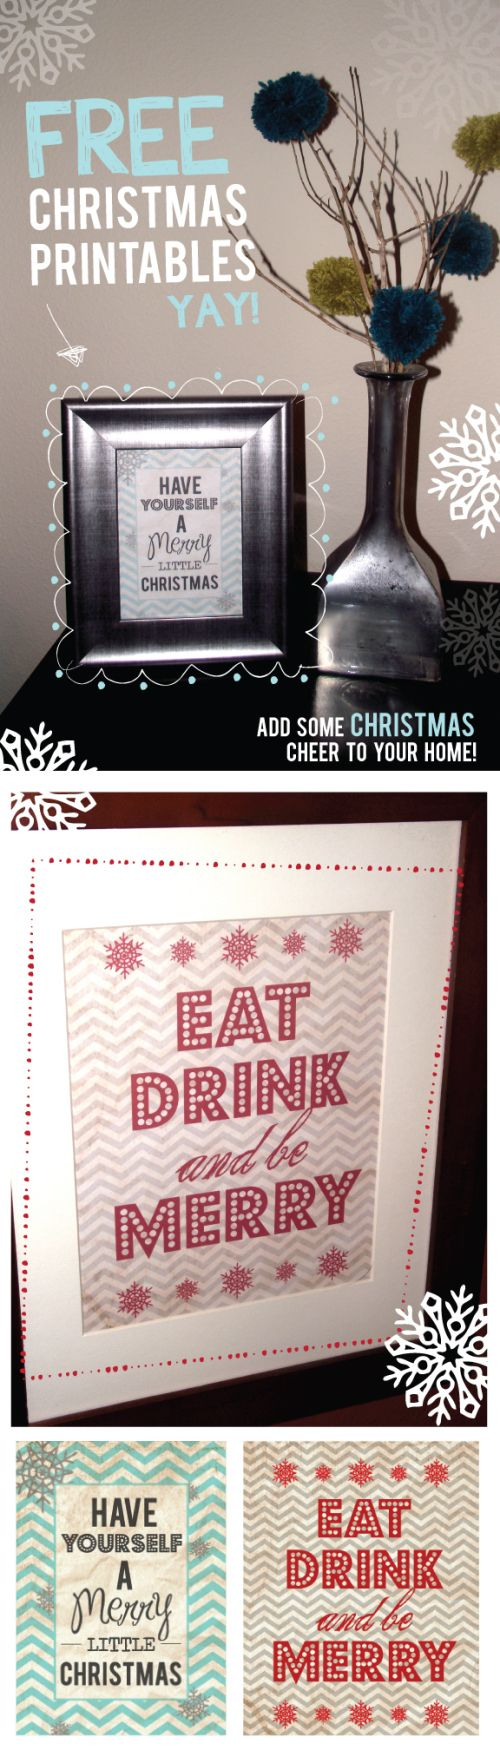 Christmas Printables I would use the Eat, Drink and Be Merry for holiday party invites or as part of a tablescape